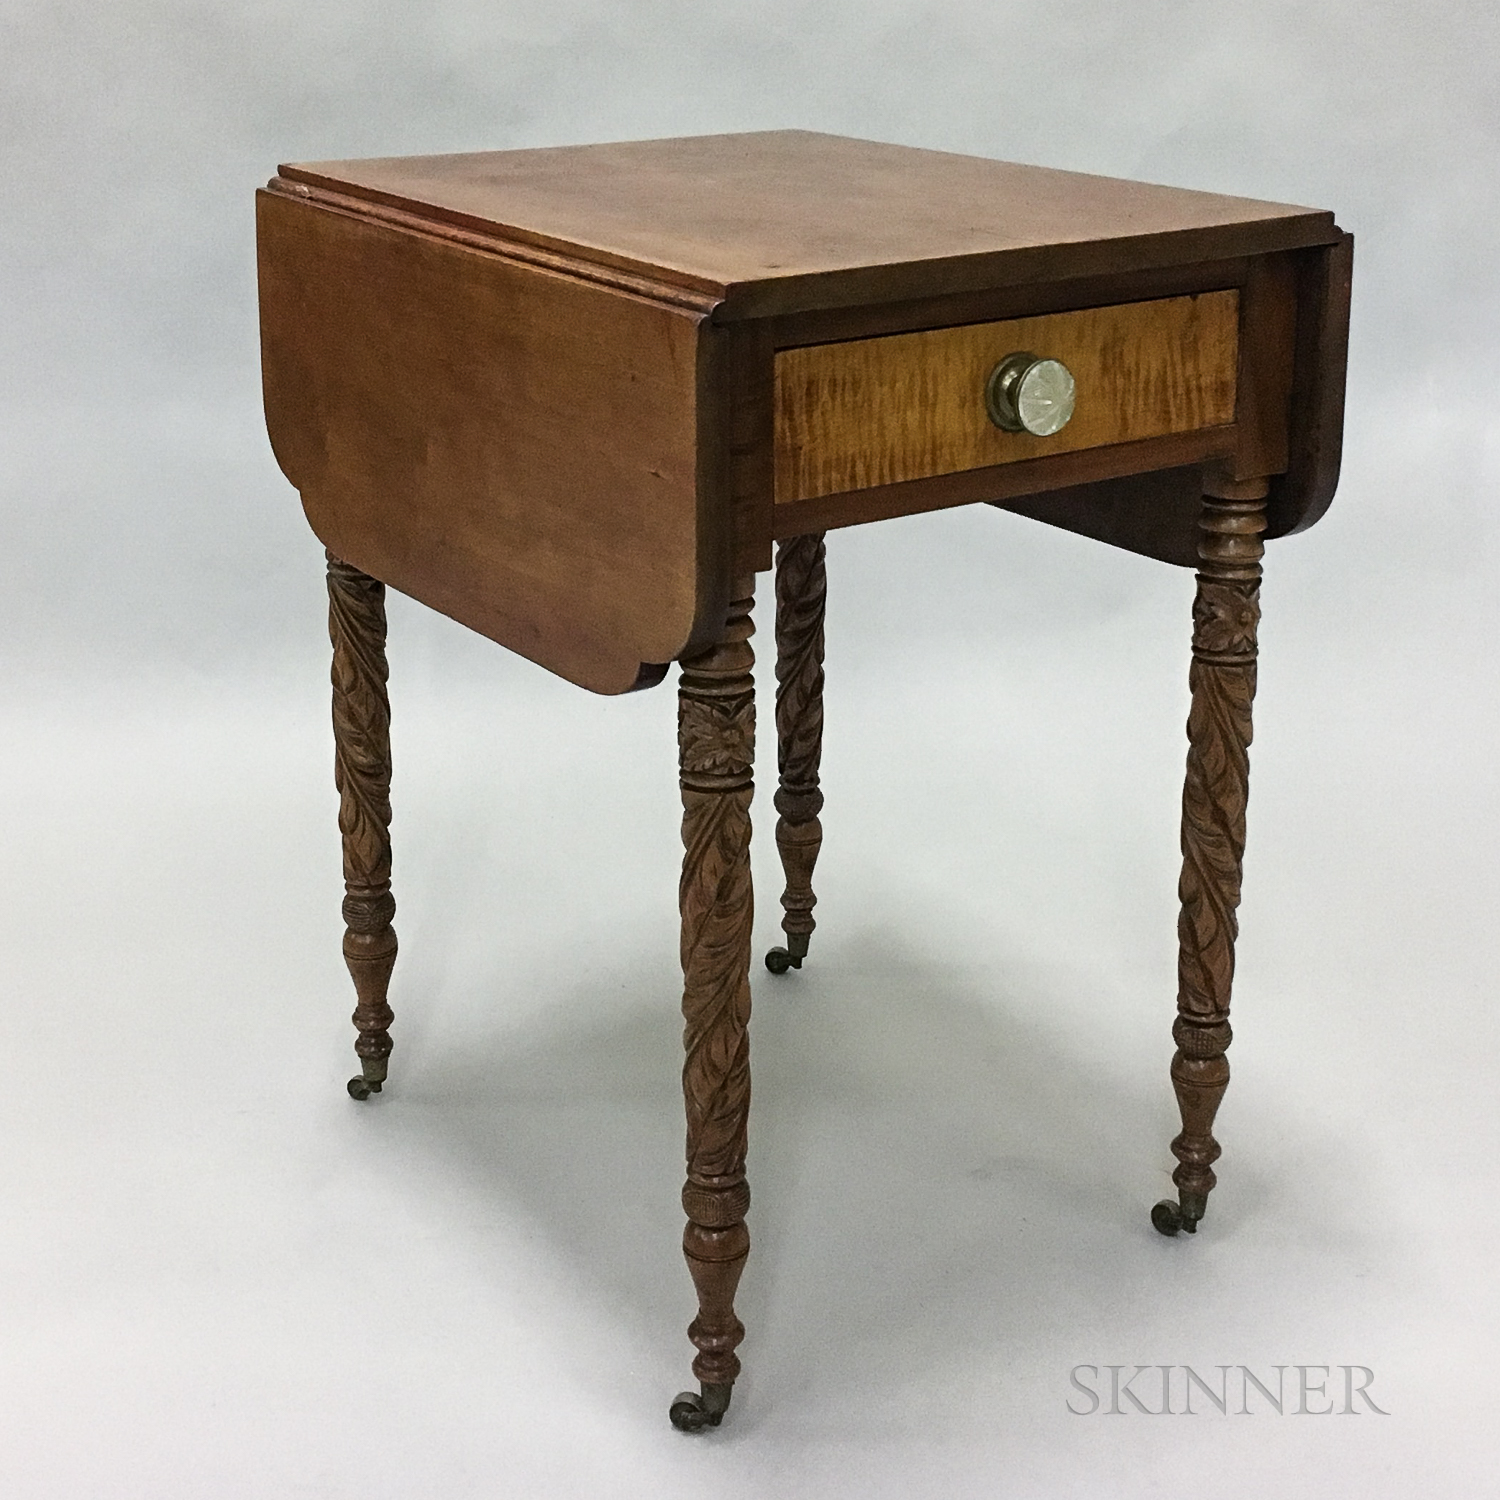 Late Federal Carved Cherry and Tiger Maple One-drawer Drop-leaf Worktable